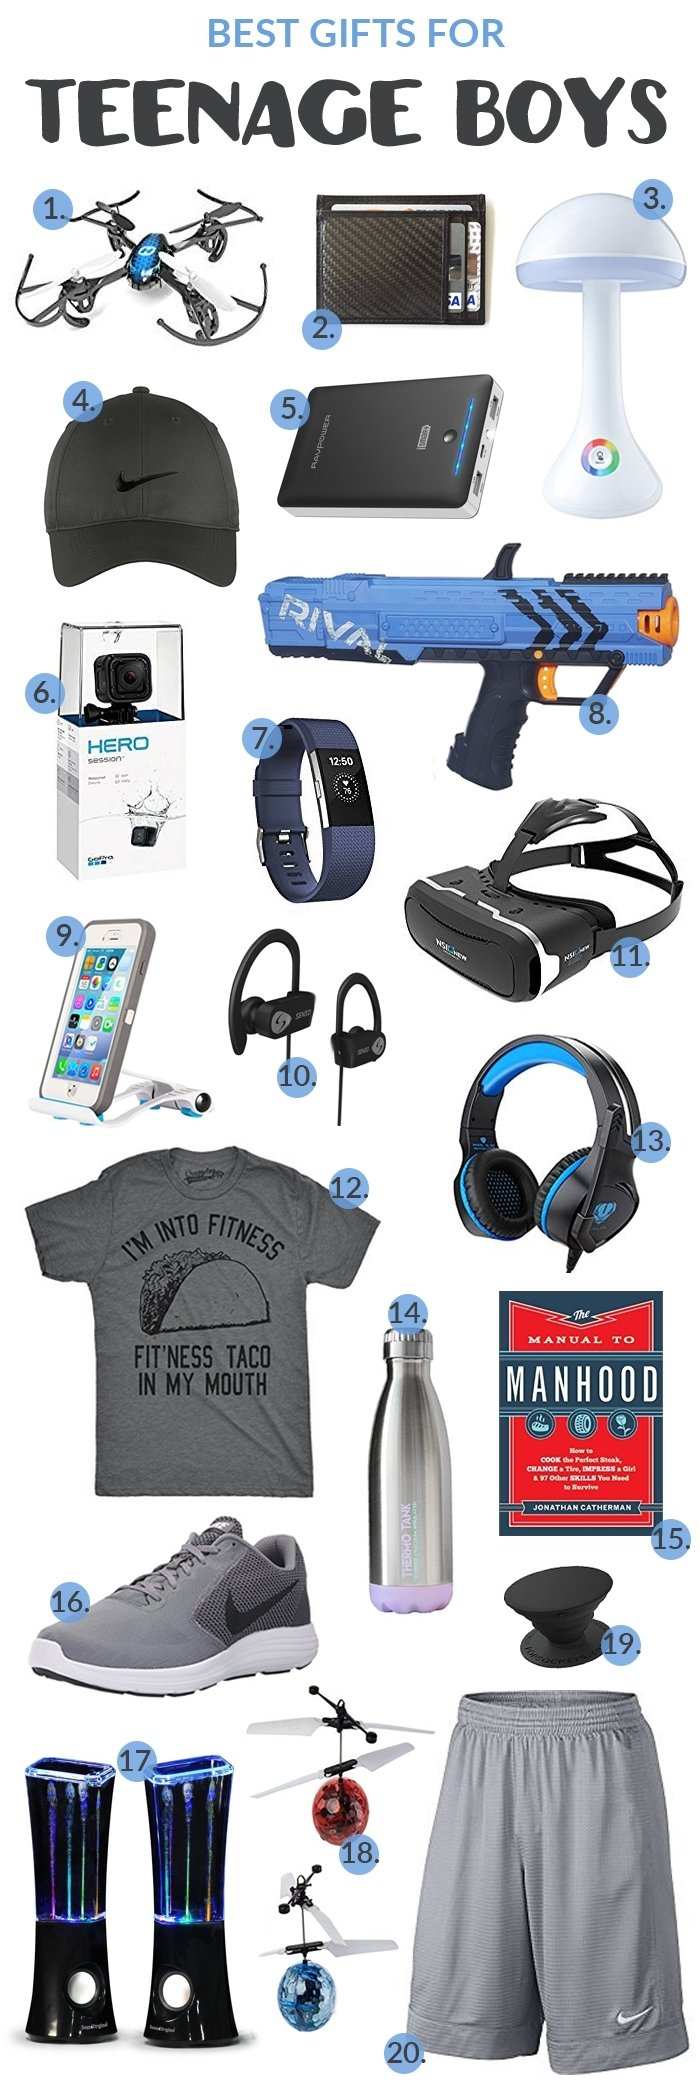 10 Fashionable Cool Gift Ideas For Teenage Guys holiday gift guides whatthegirlssay 2020